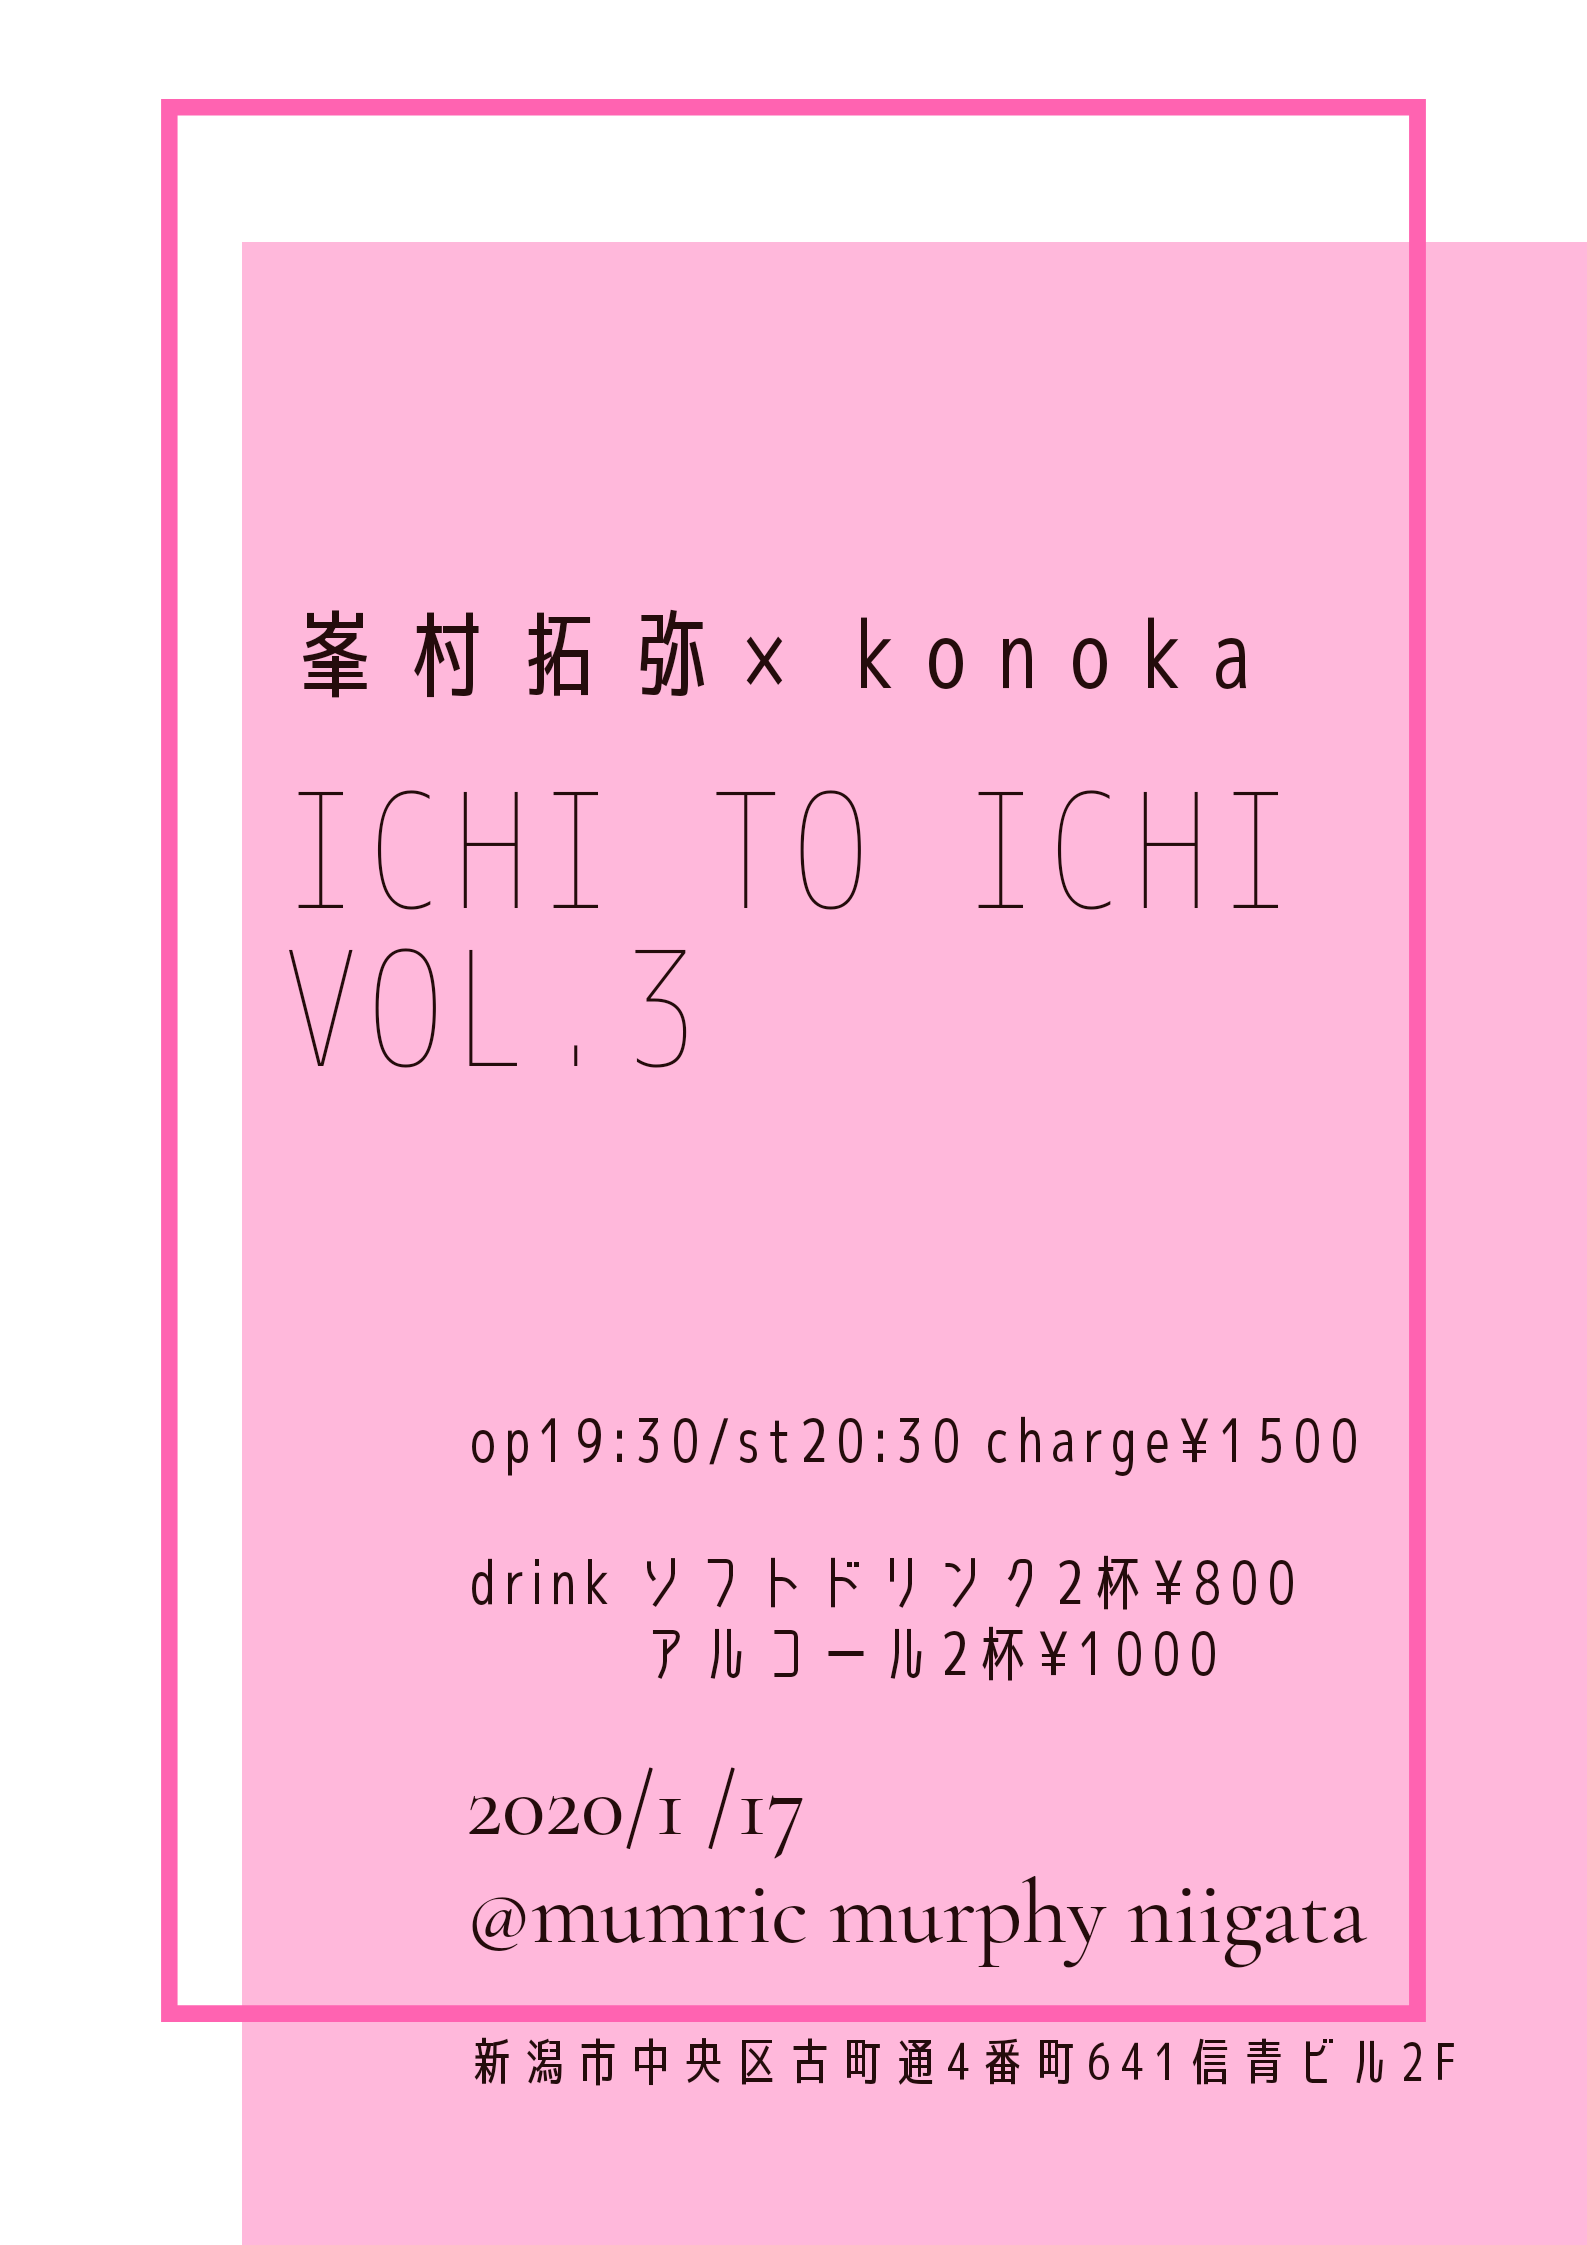 ICHI TO ICHI vol.3